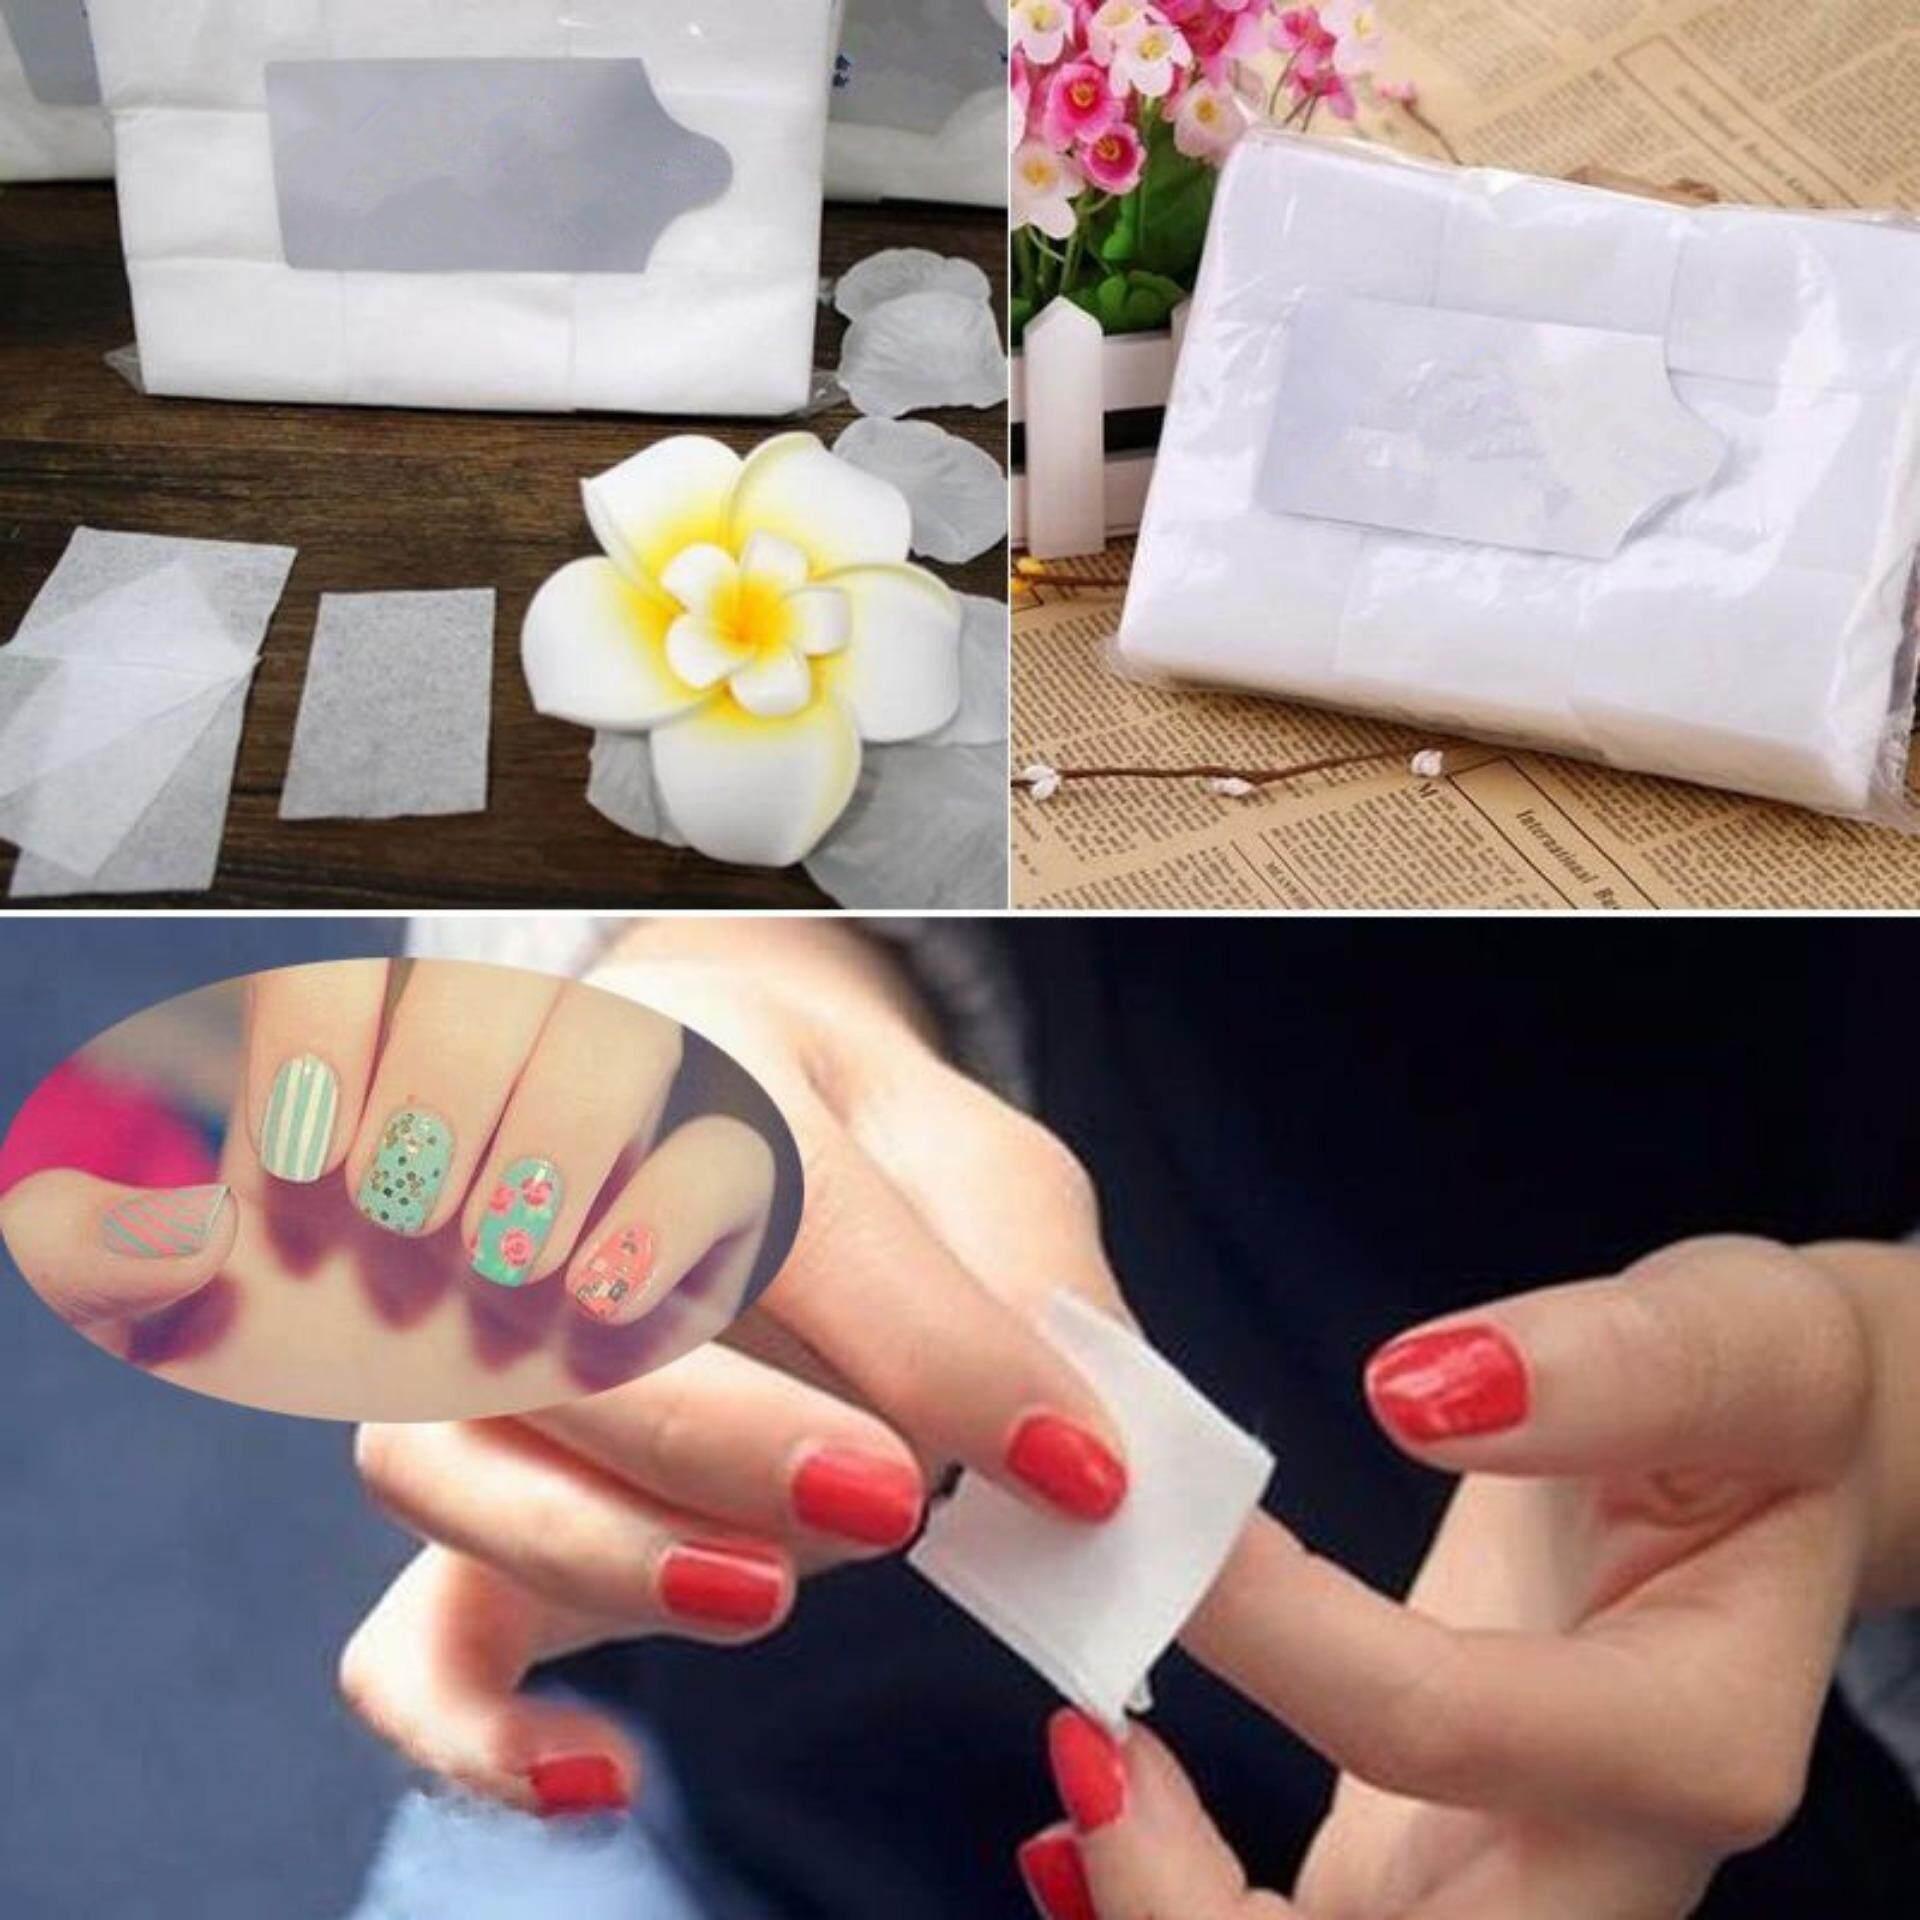 Elife 900 Cotton Nail Wipes Flat Pack Nail UV Gel Cleaner Pads High Quality Silcare UK Philippines